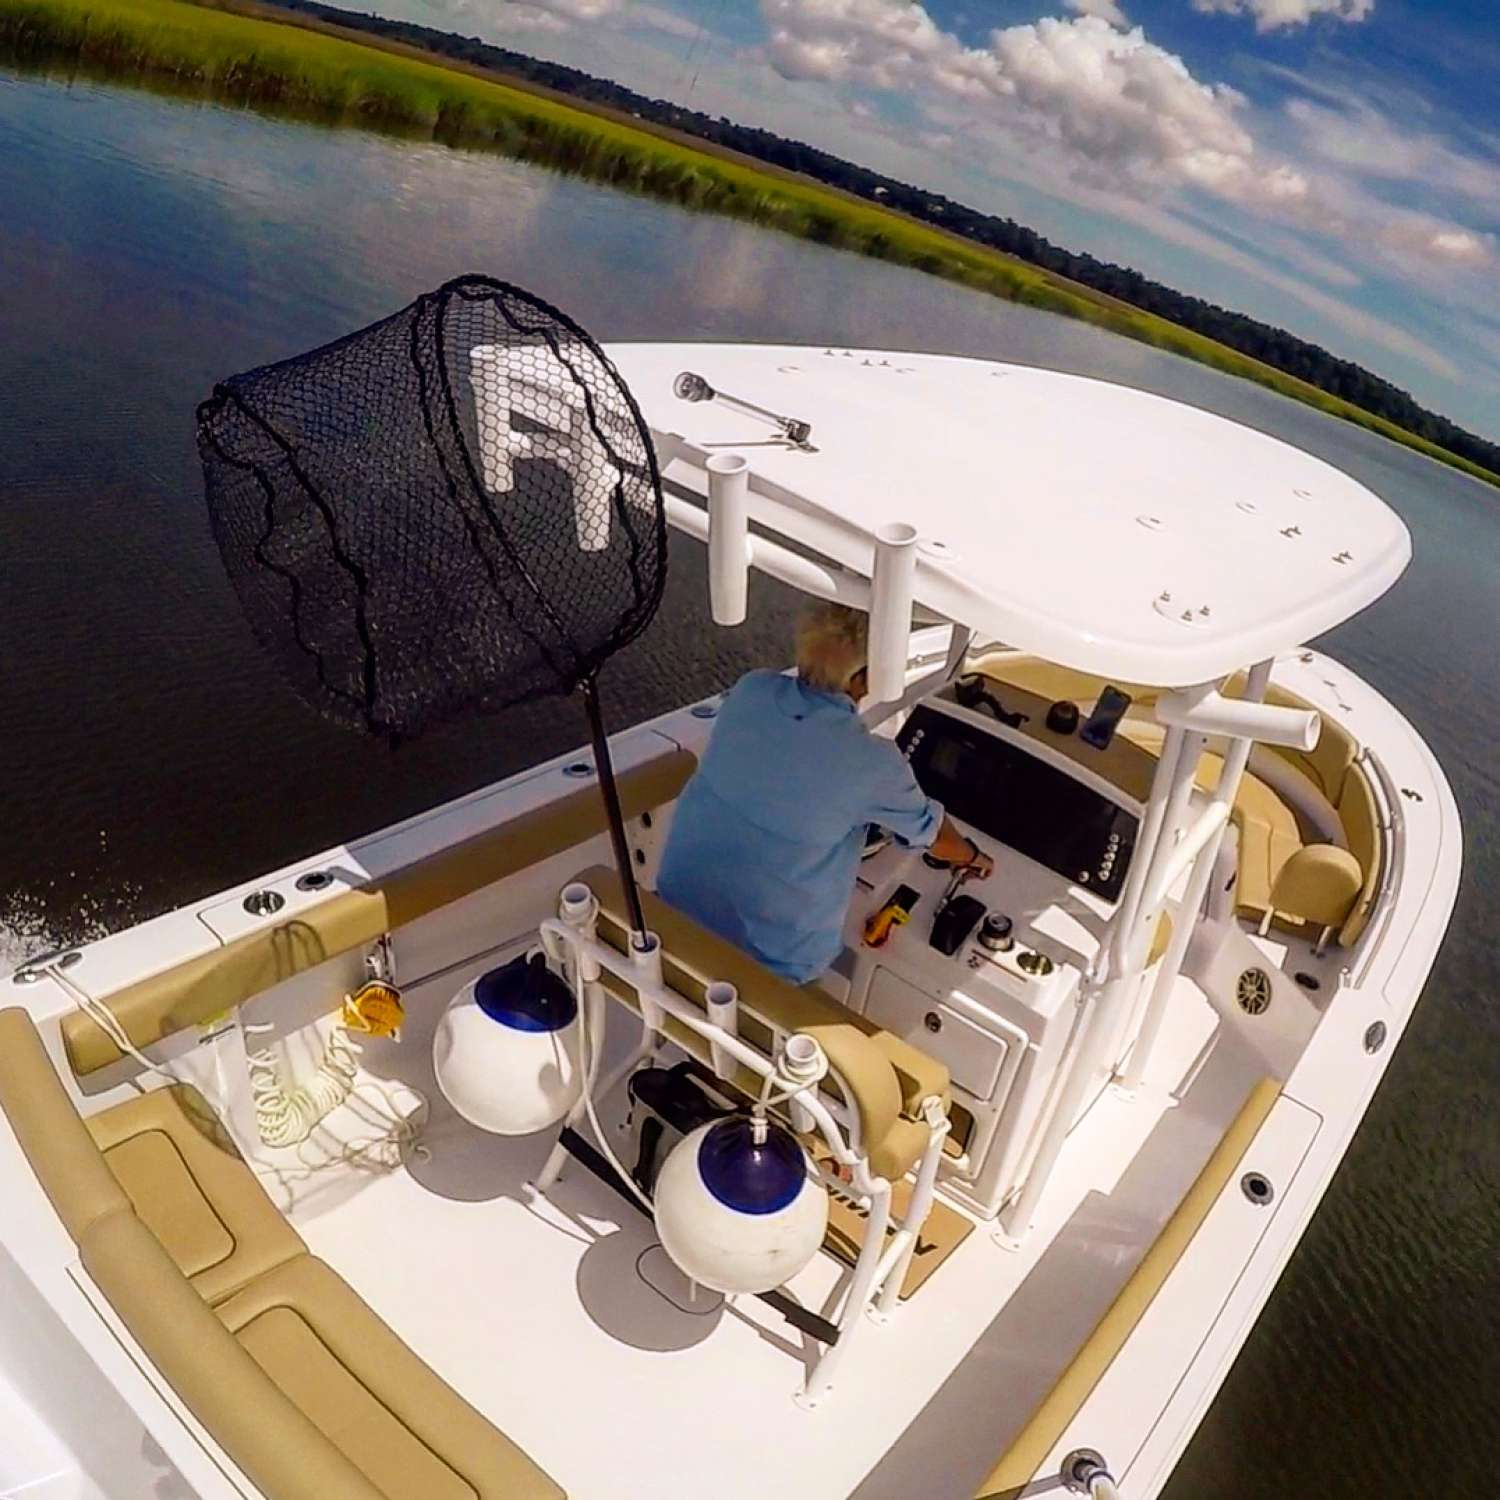 Title: Cruising In The 231 Heritage - On board their Sportsman Heritage 231 Center Console - Location: Charleston, South Carolina. Participating in the Photo Contest #SportsmanAugust2017